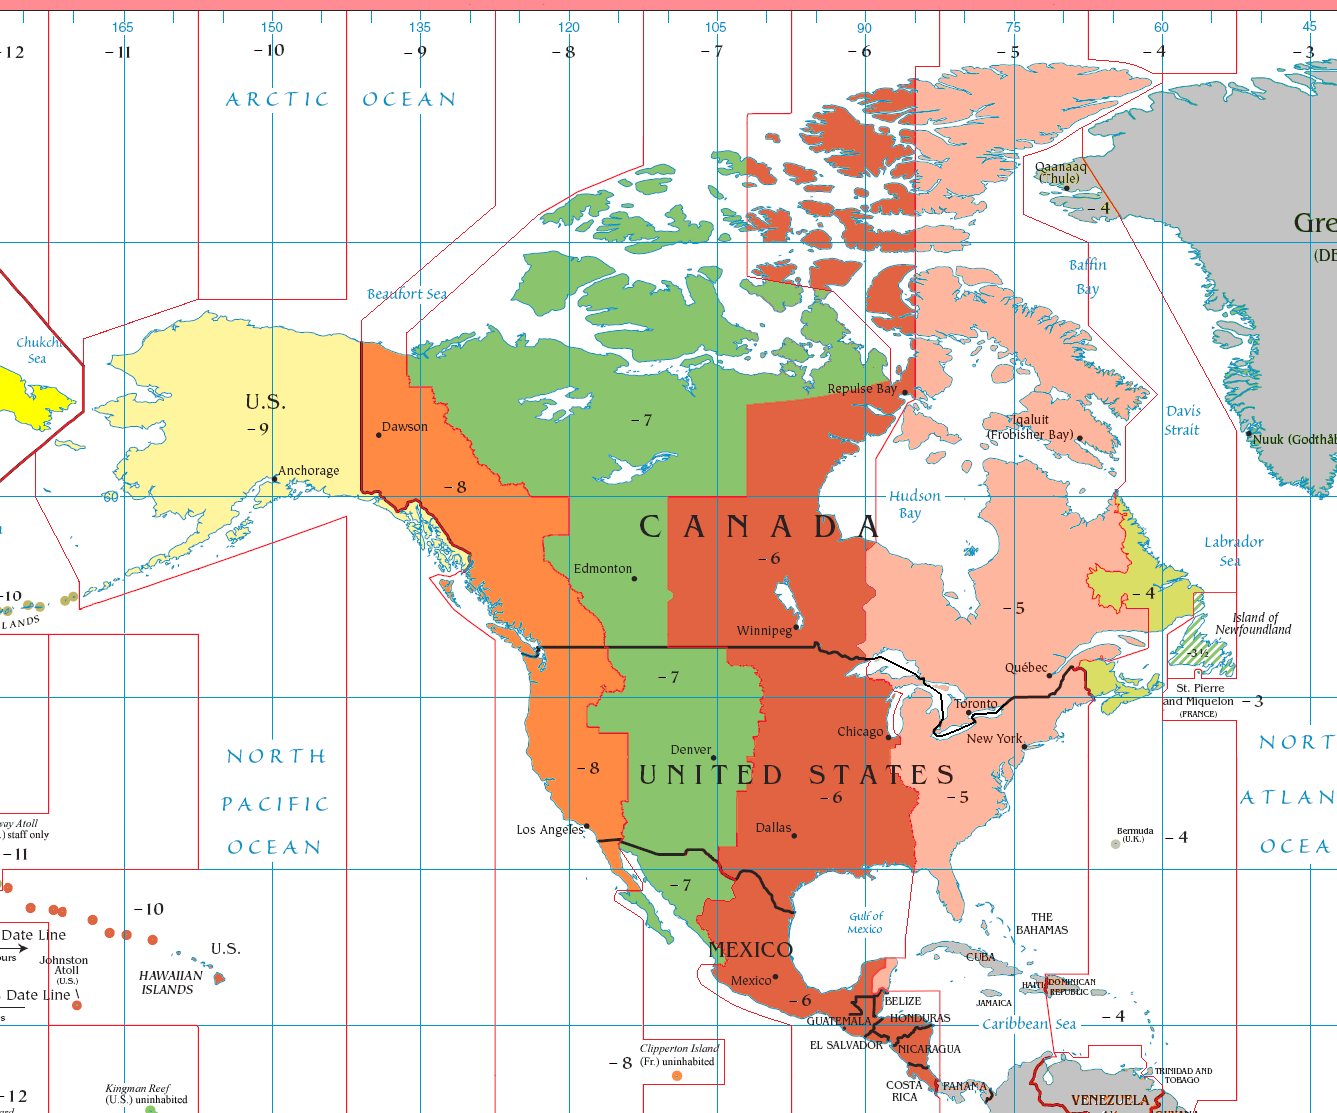 Map Of Time Zones Canada And Usa.Today In History November 18 1883 Time Zones Standardized In